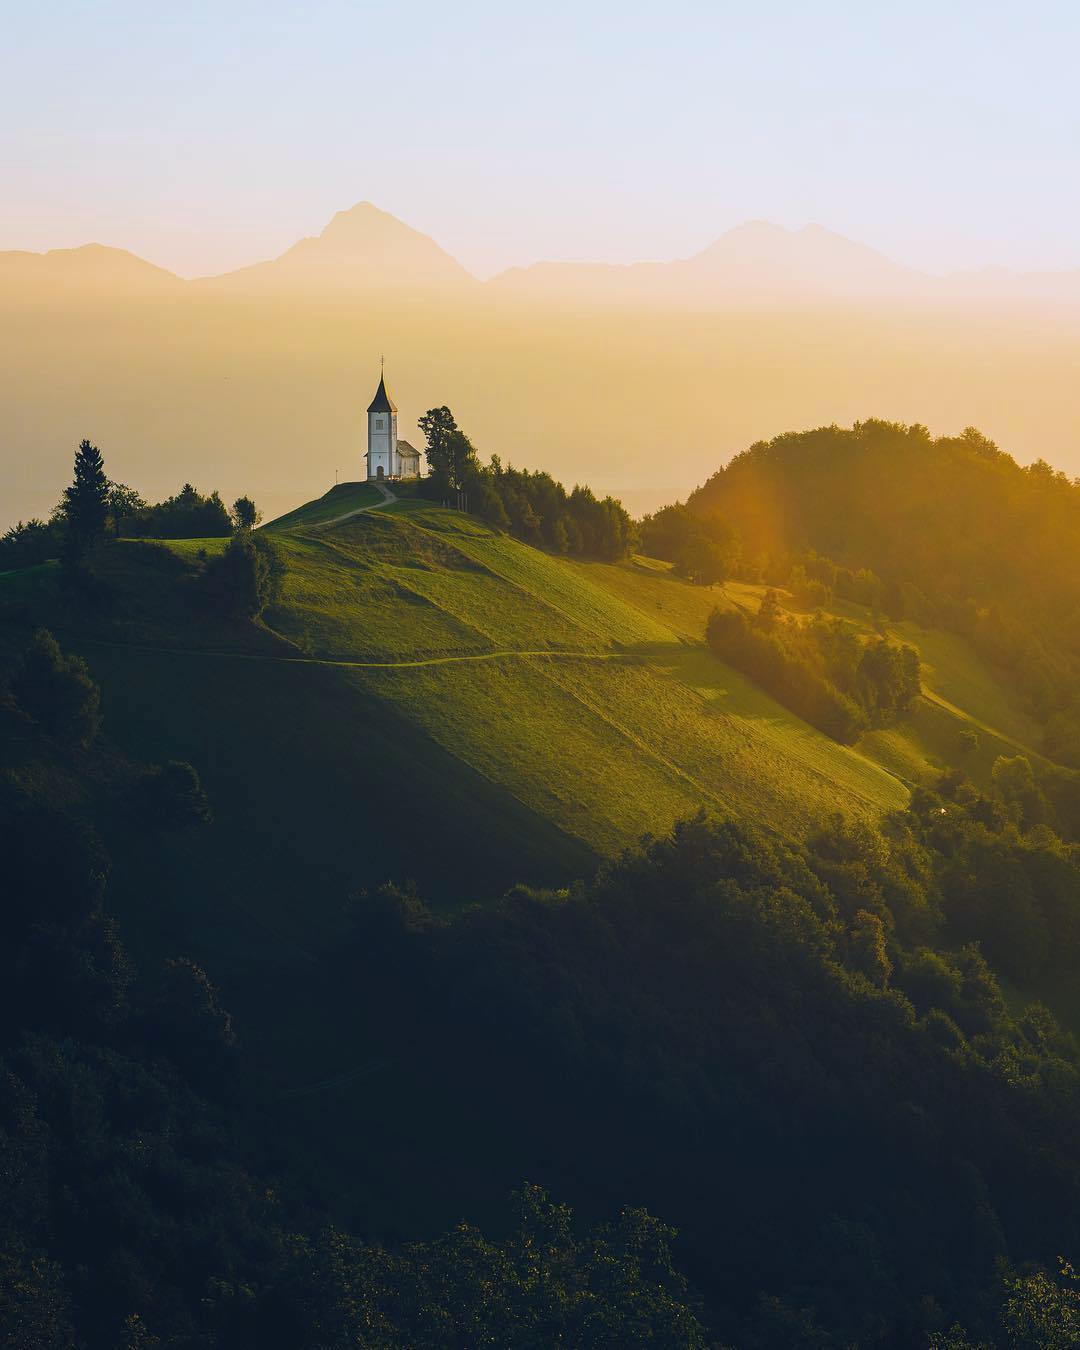 Getting up early and catching a mesmerising sunrise at a spot like this? .  Here's a hint. ️ This is Jamnik - Church of St. Primus and Felician, one of the most beautiful churches in Slovenia.  . Thanks @georgeduluth for sharing your photo with #ifeelsLOVEnia.